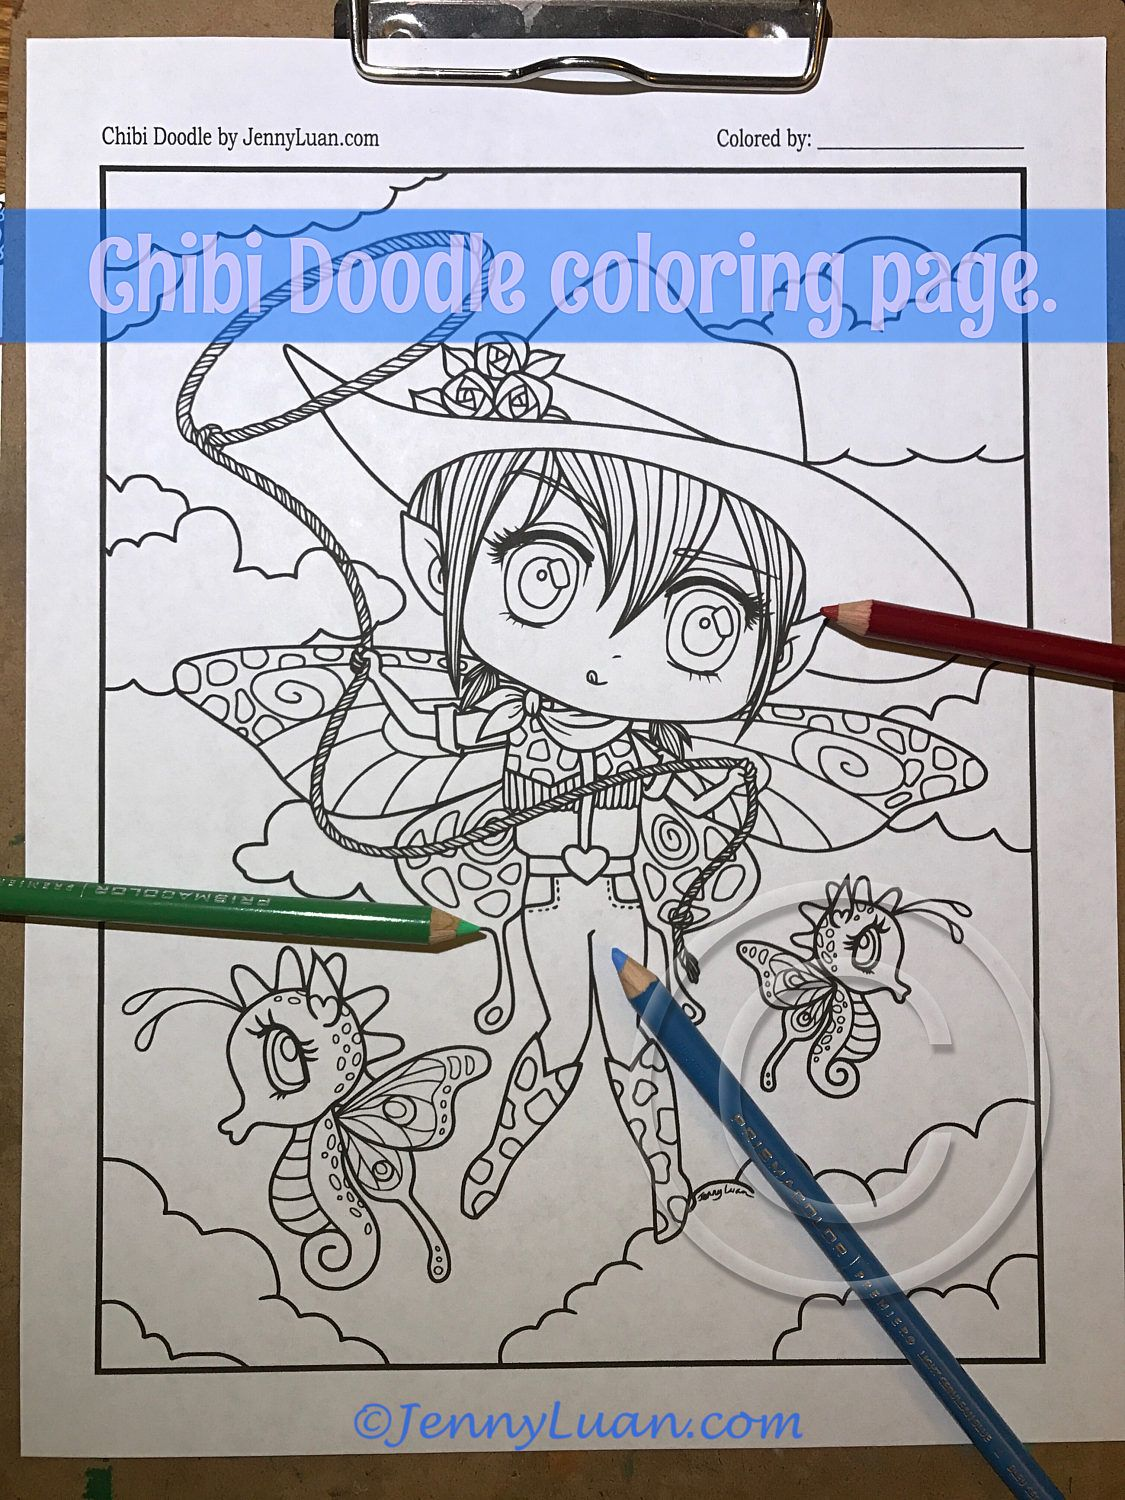 Chibi Doodle Cowgirl Rodeo Fairies Anime Manga Coloring Page For Adult PDF Download By JennyLuanArt